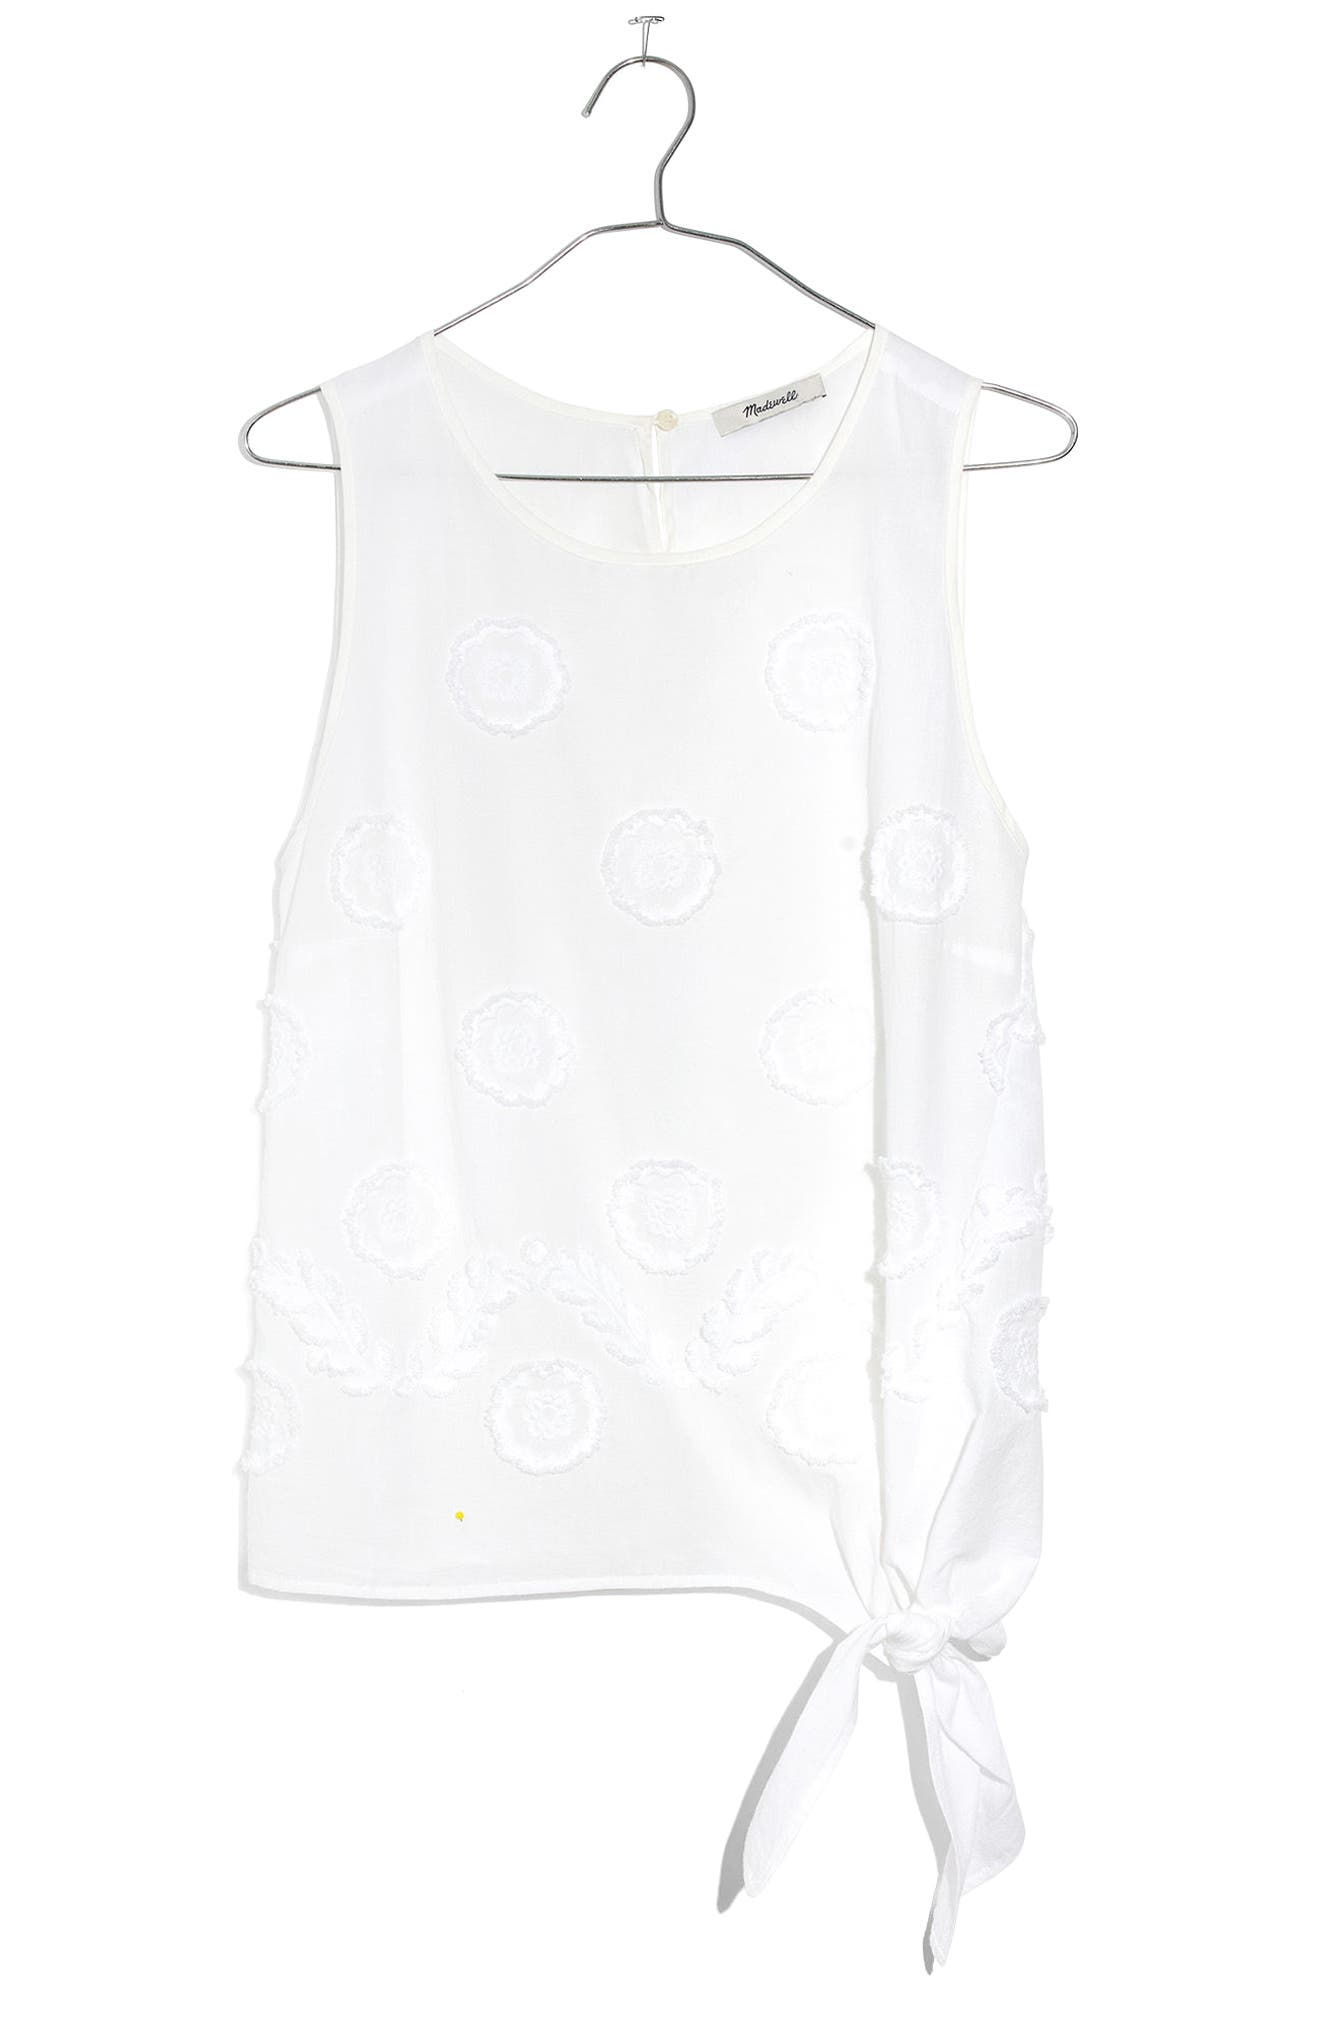 MADEWELL,                             Embroidered Side Tie Tank,                             Alternate thumbnail 4, color,                             101